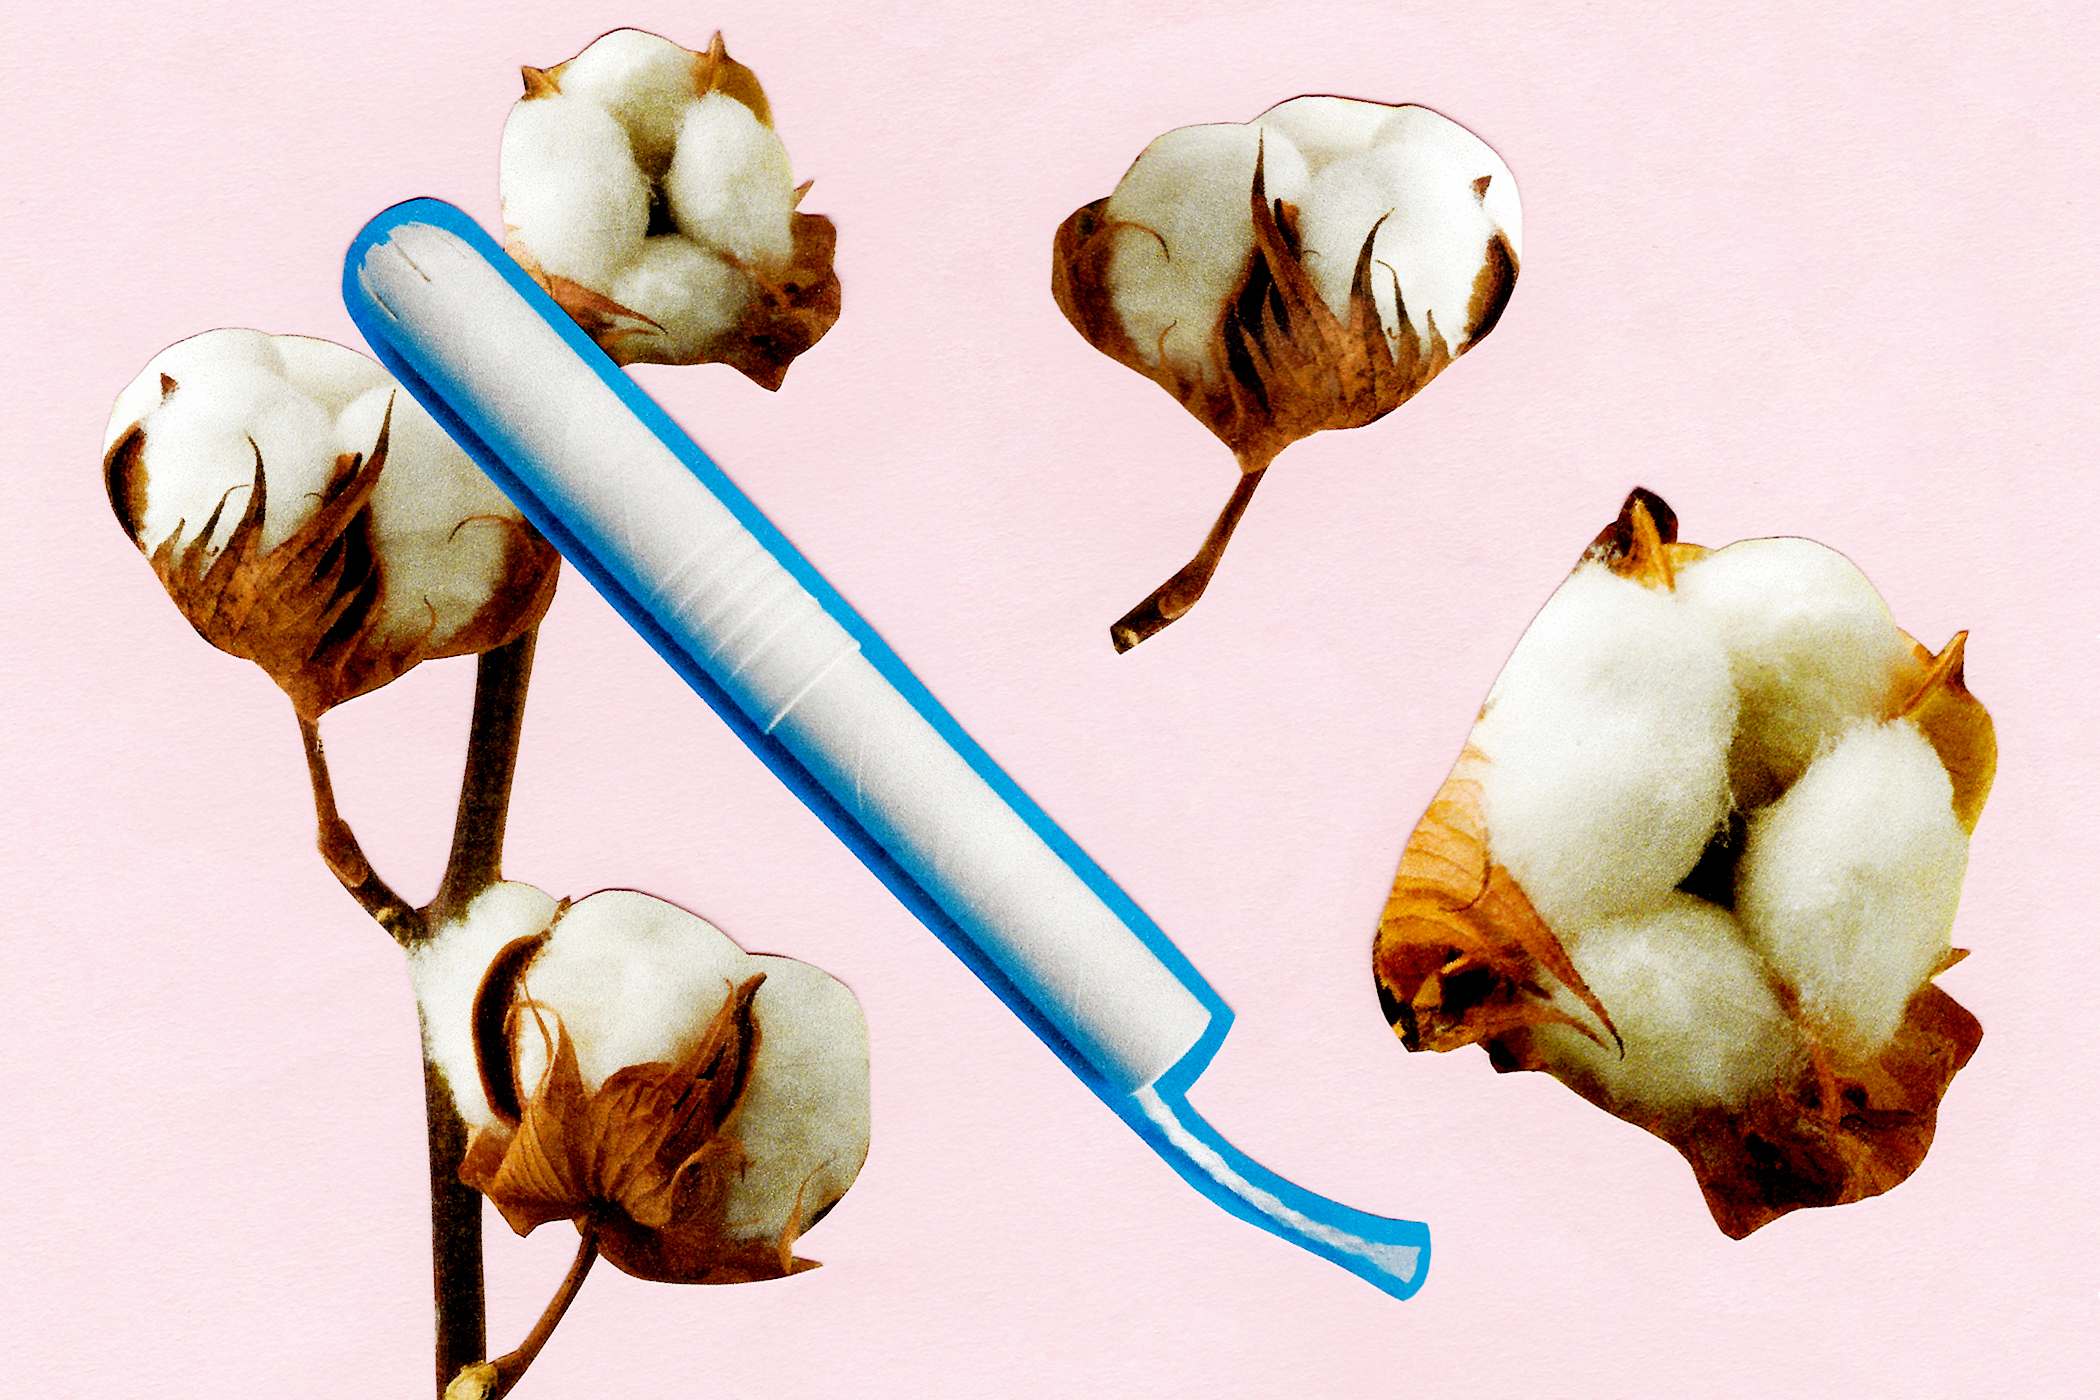 Whats-In-Your-Tampon-and-Should-You-Care-Health-Women-Menstrual-Period-Cotton-Man-Repeller-Feature-sq.jpg